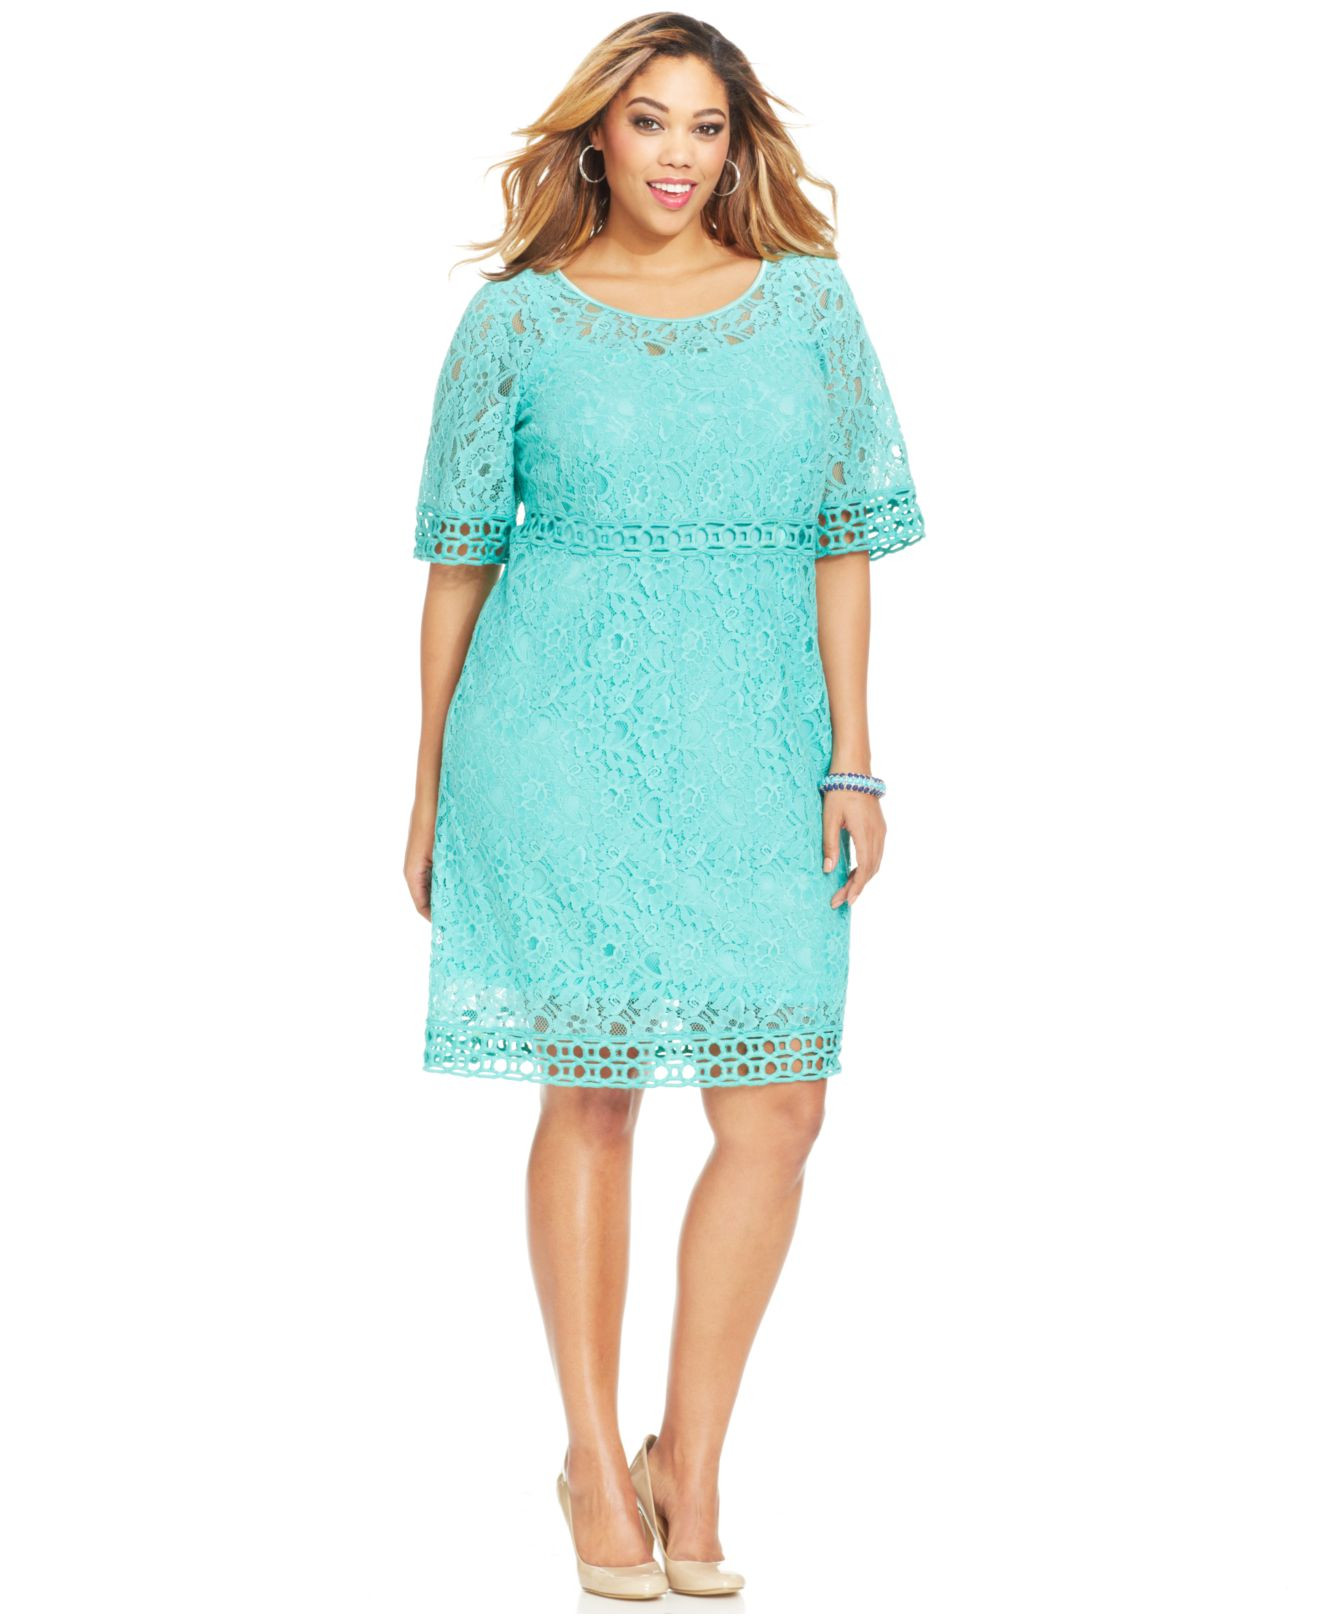 Inspirational Spense Plus Size Crochet Trim Lace Dress In Green Crochet Trim Dresses Of Attractive 47 Images Crochet Trim Dresses